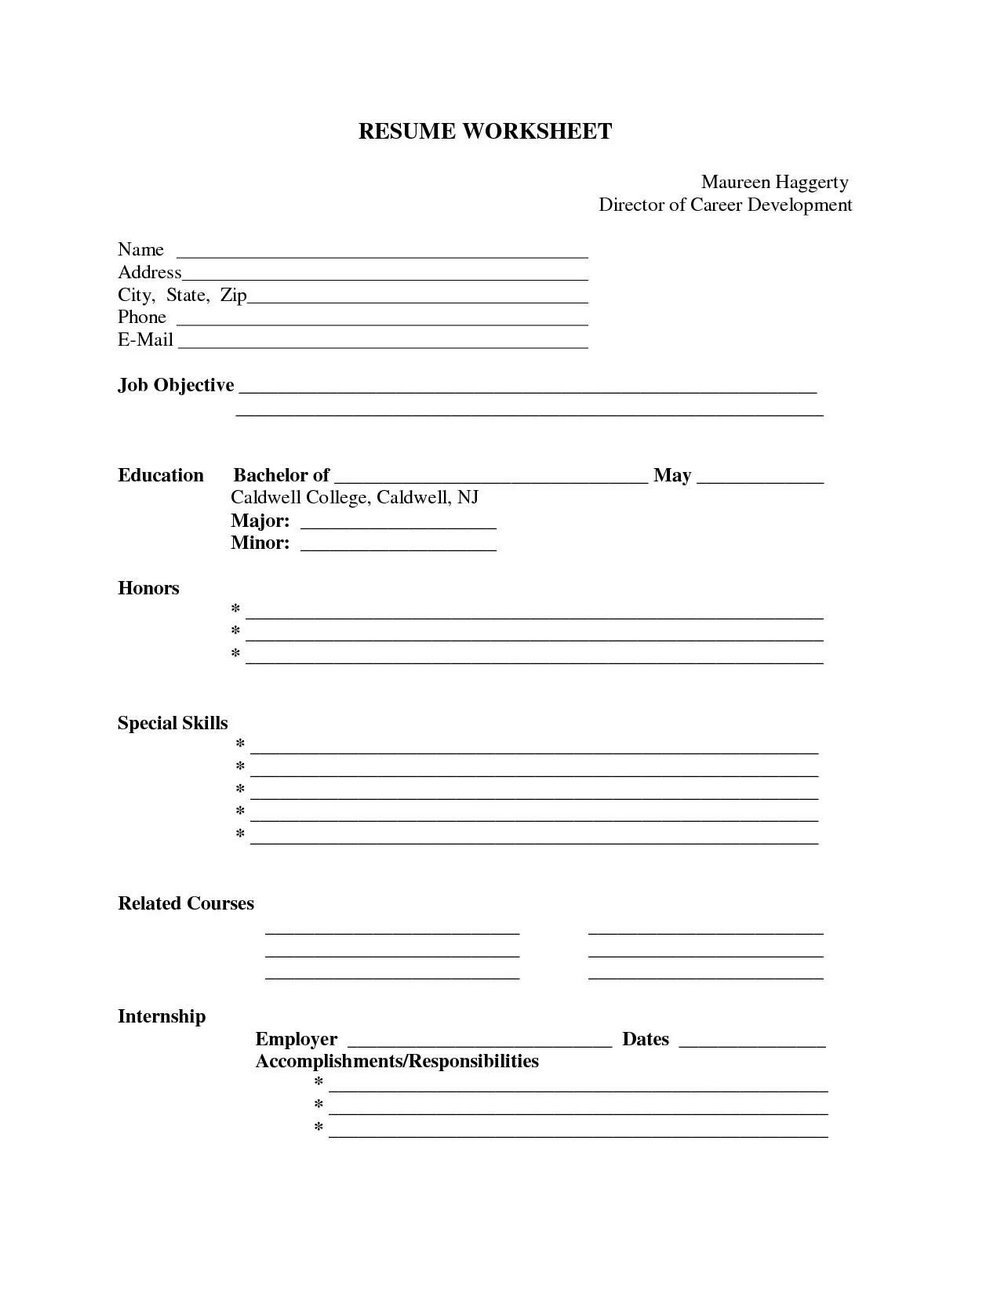 Free Printable Resume Templates Online